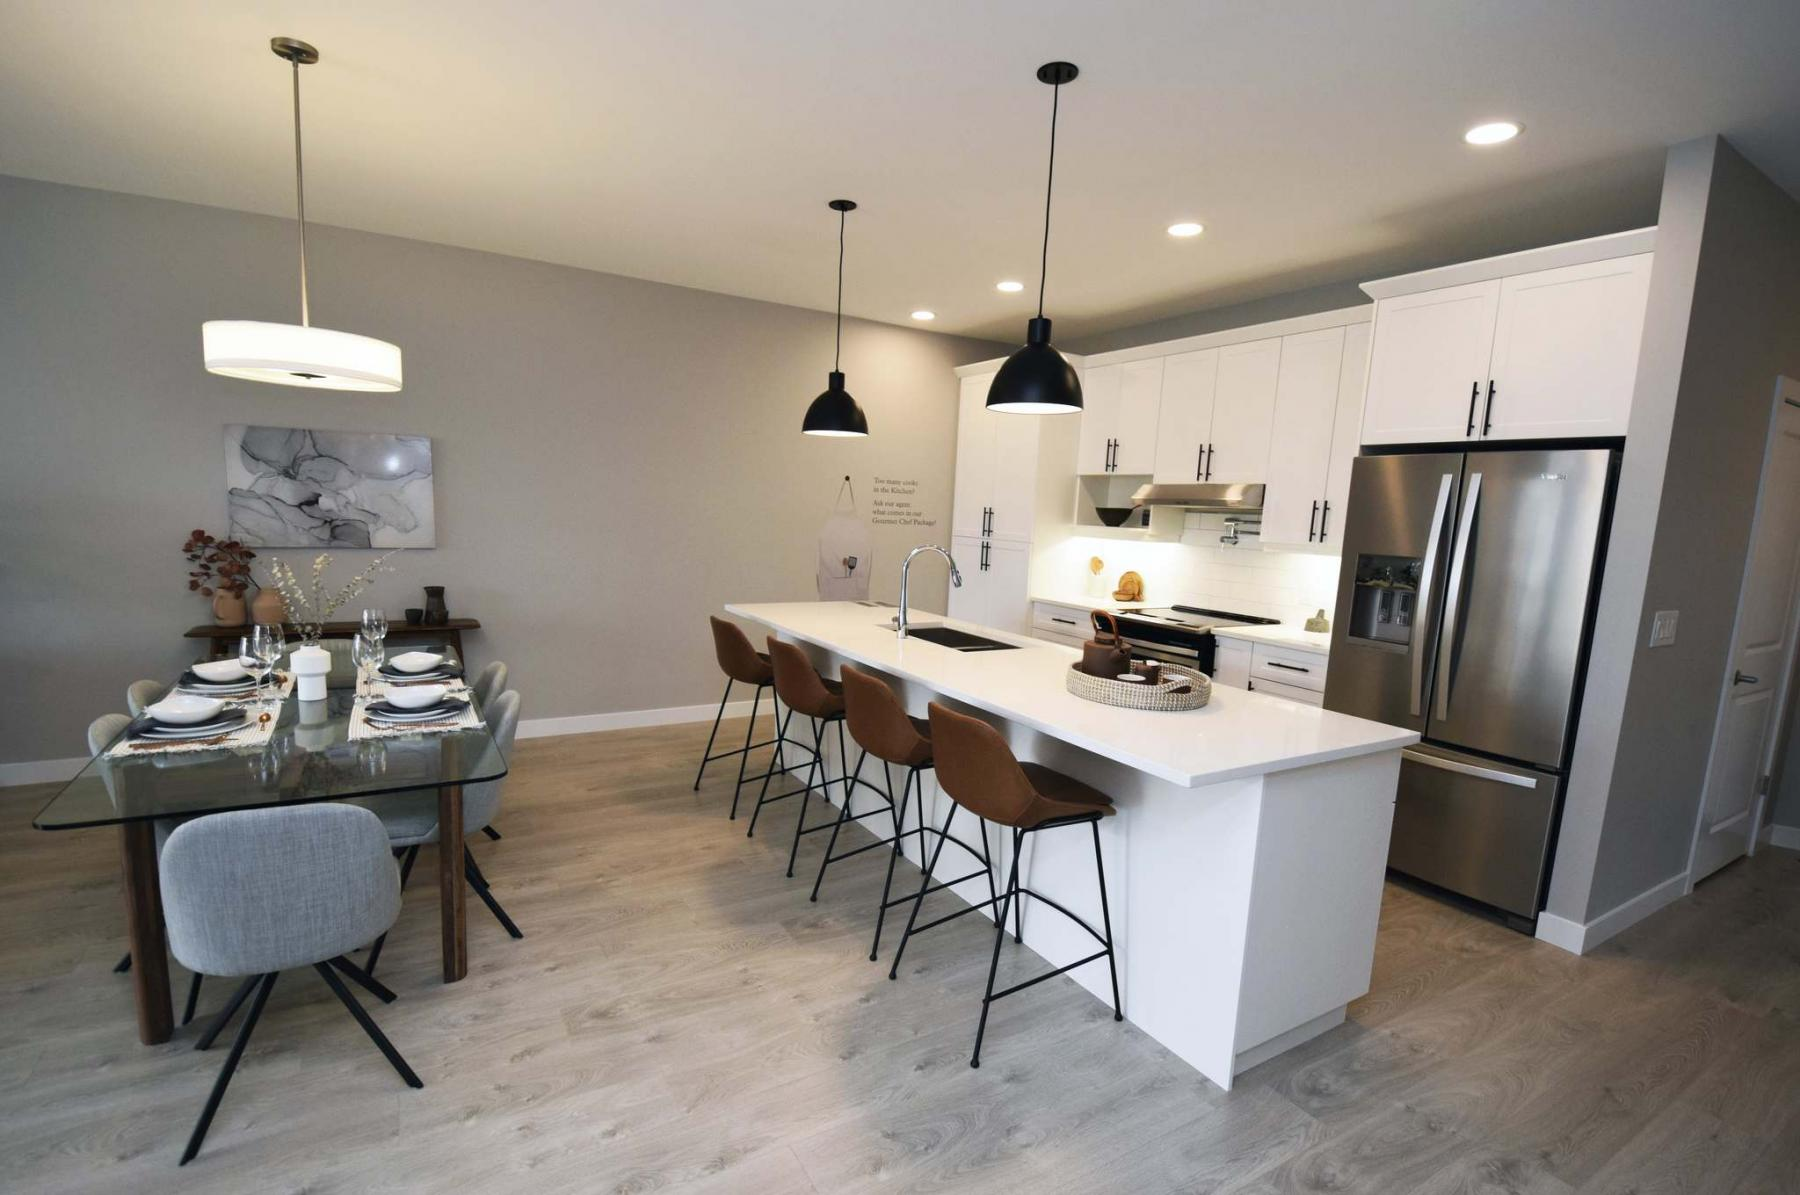 <p>Todd Lewys / Winnipeg Free Press files</p><p>More than 110 stunning new show homes will be featured in the Fall Parade of Homes. </p>